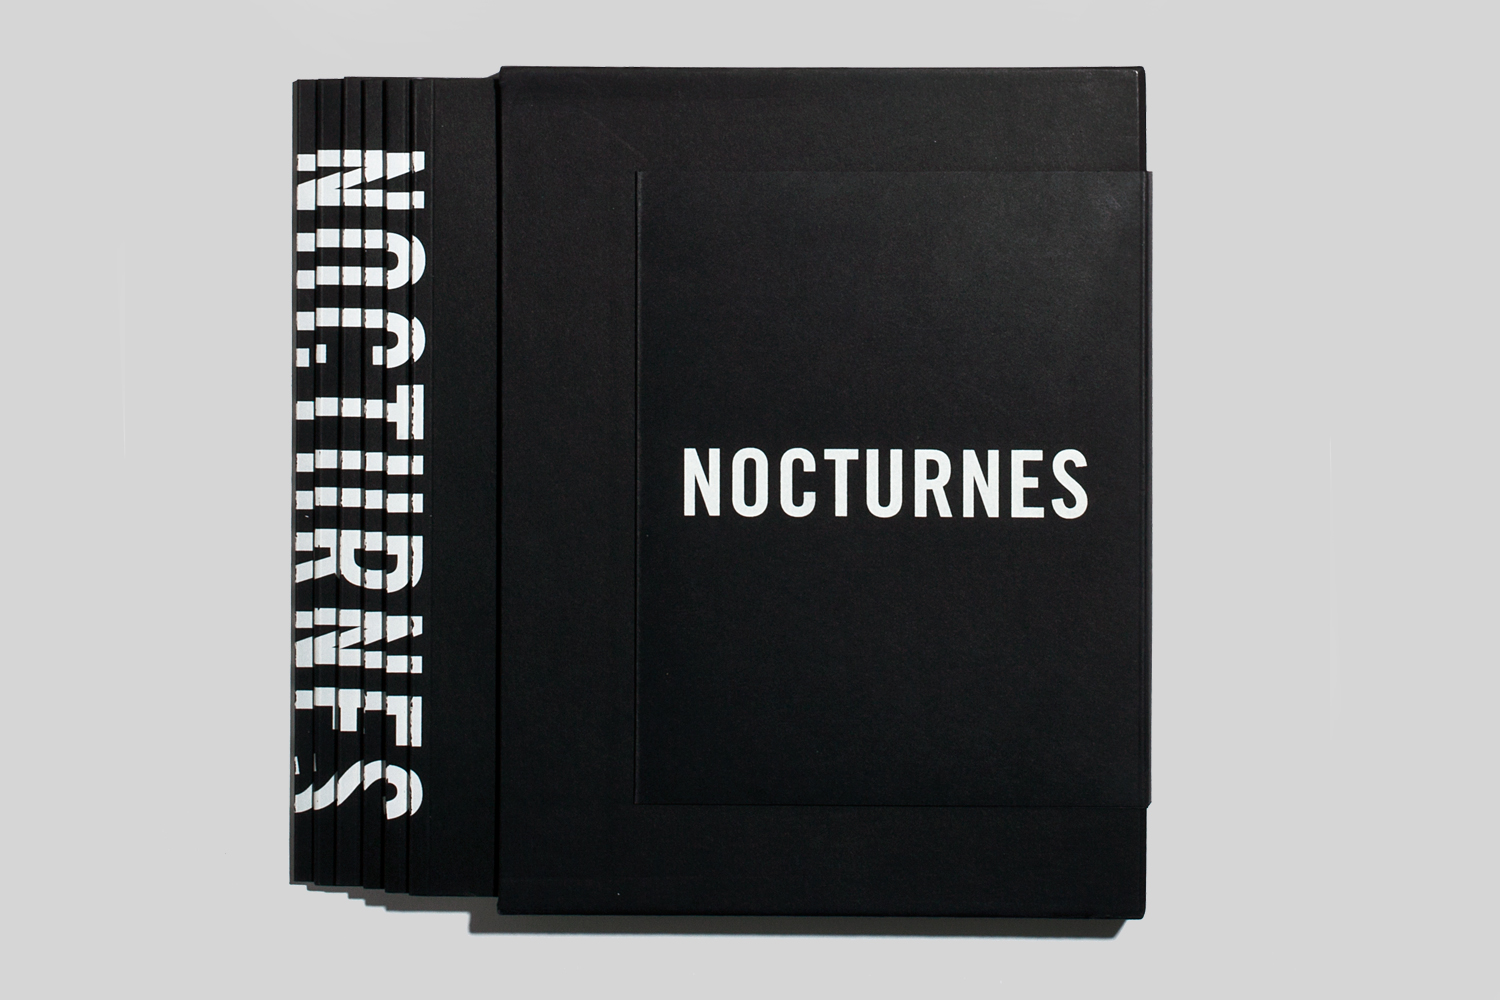 Nocturnes AM projects, selected by Jörg Colberg, founder and editor of Conscientious